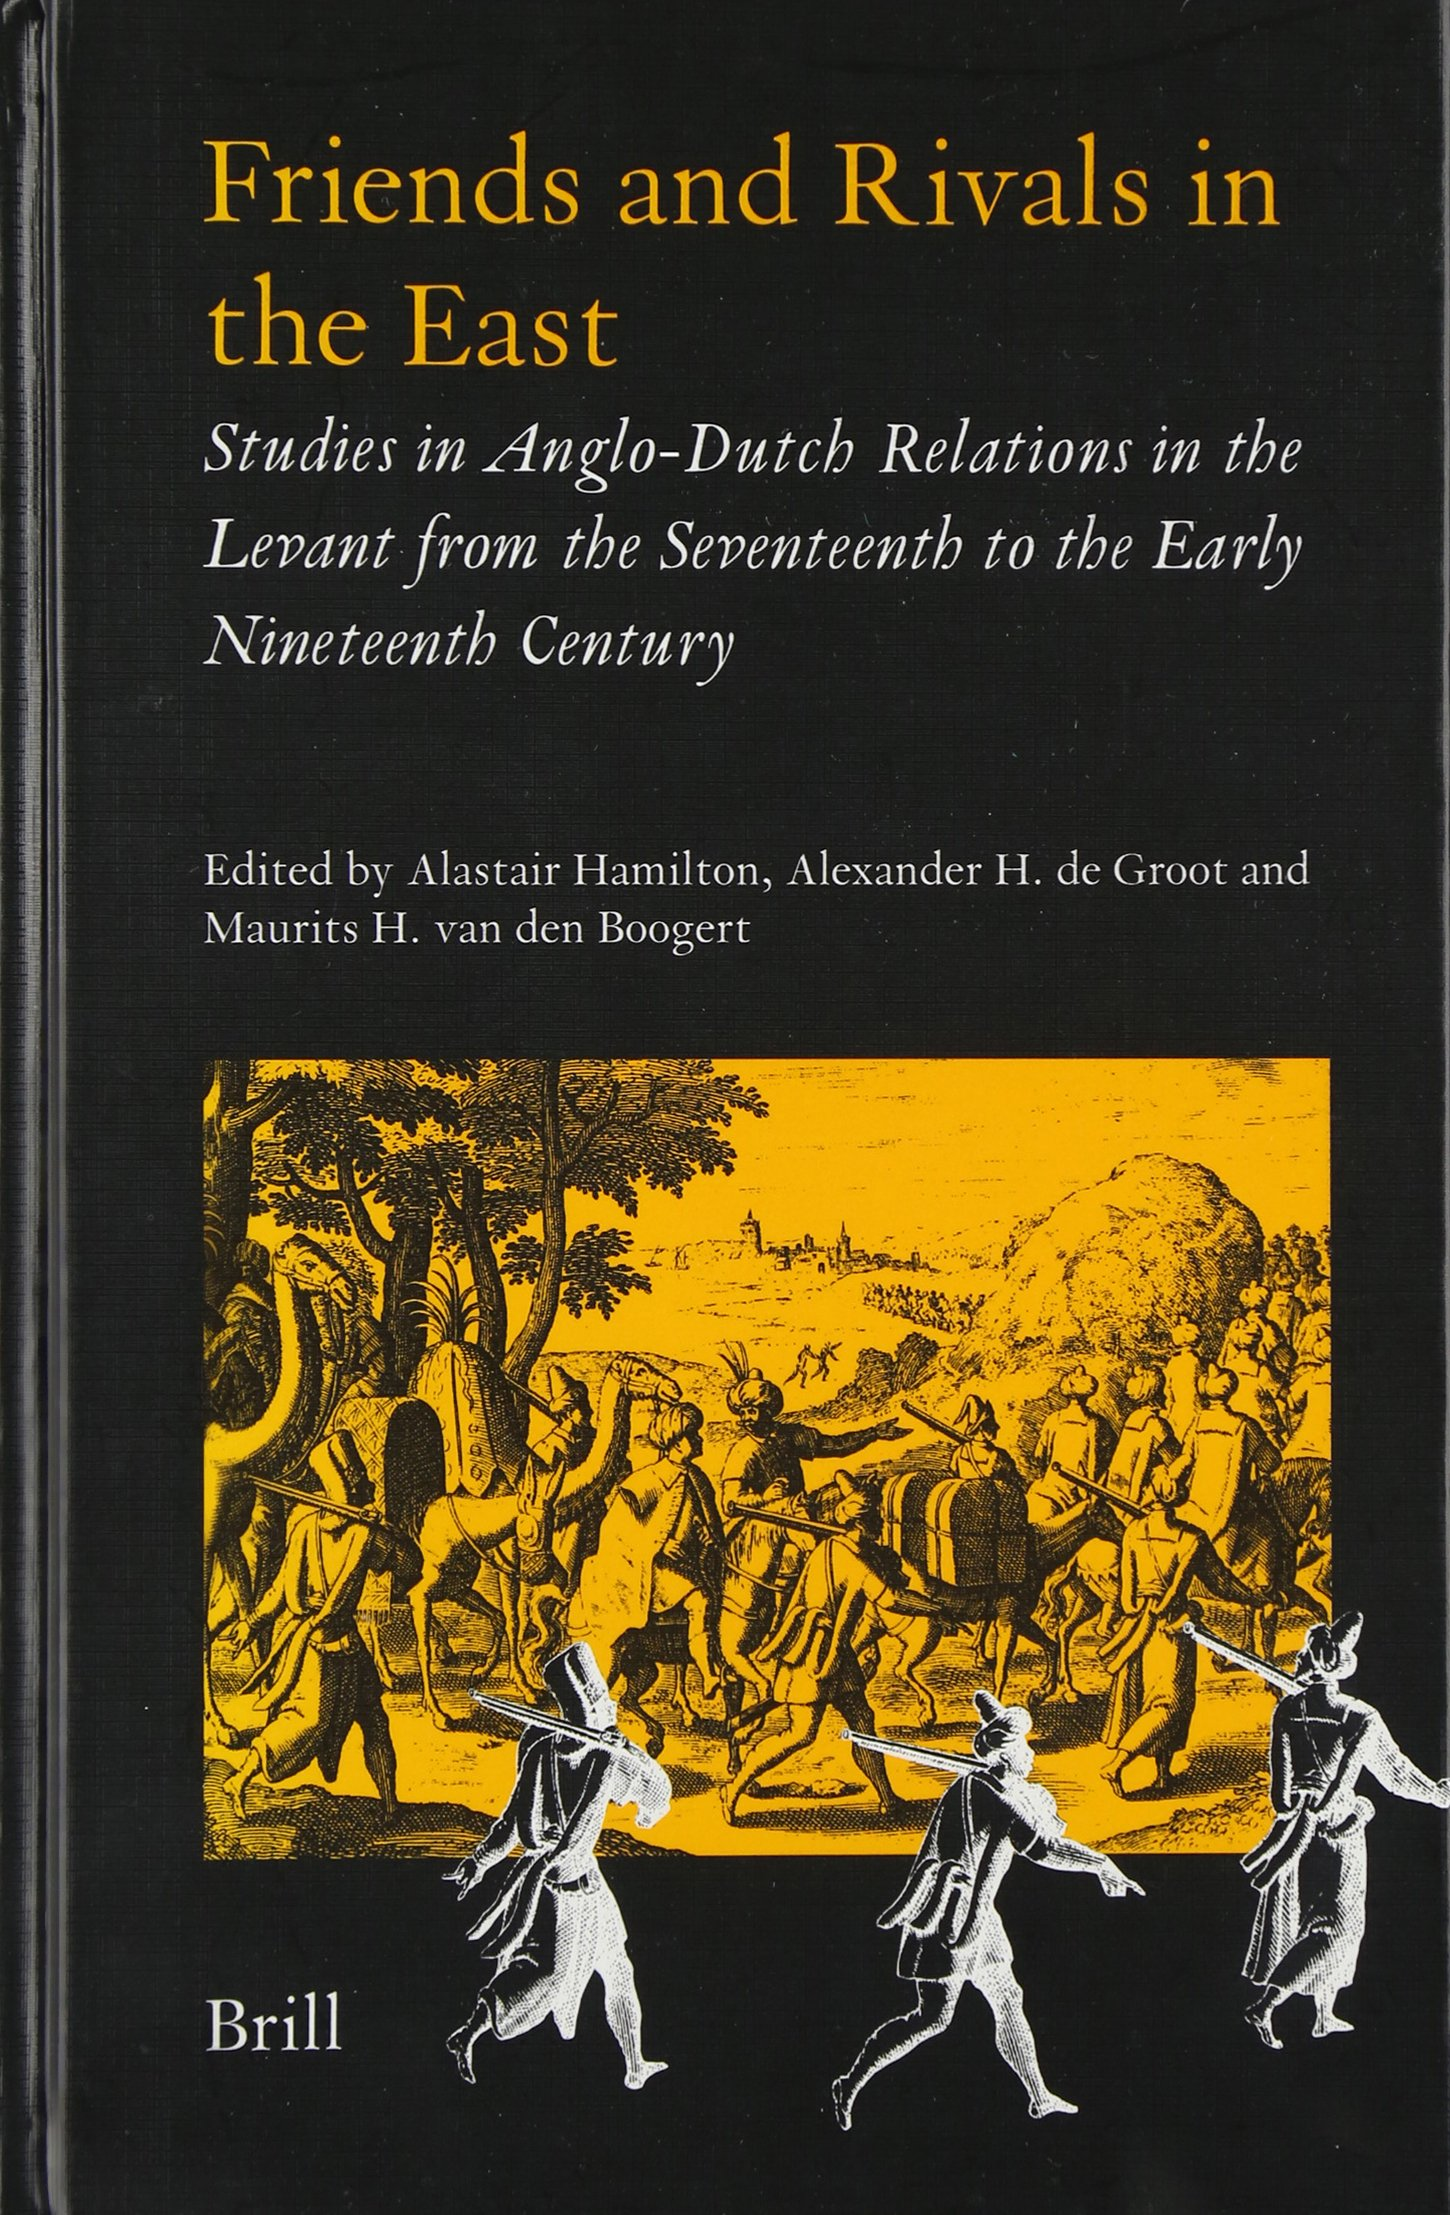 Download Friends and Rivals in the East: Studies in Anglo-Dutch Relations in the Levant from the Seventeenth to the Early Nineteenth Century (Publications of the Sir Thomas Browne Institute Leiden) PDF Text fb2 book